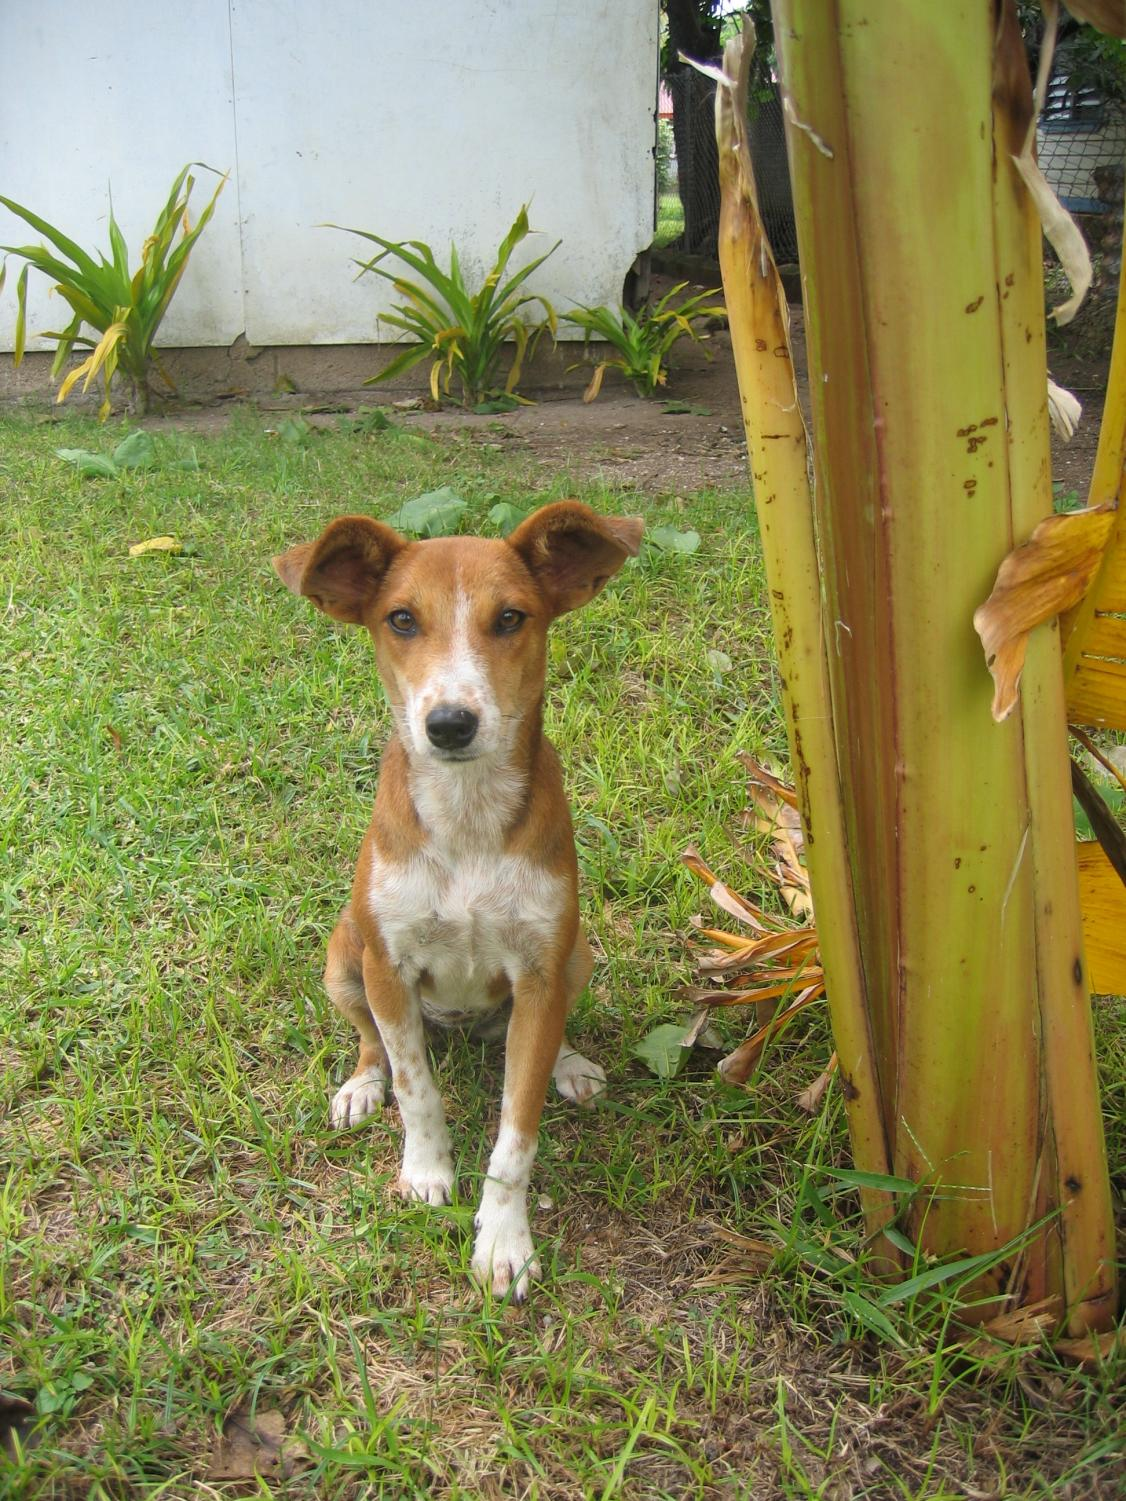 This is Mickey, a Tonga dog that made friends with ESL teacher Soraya Bilbao while she served in the Peace Corps. Bilbao notes,